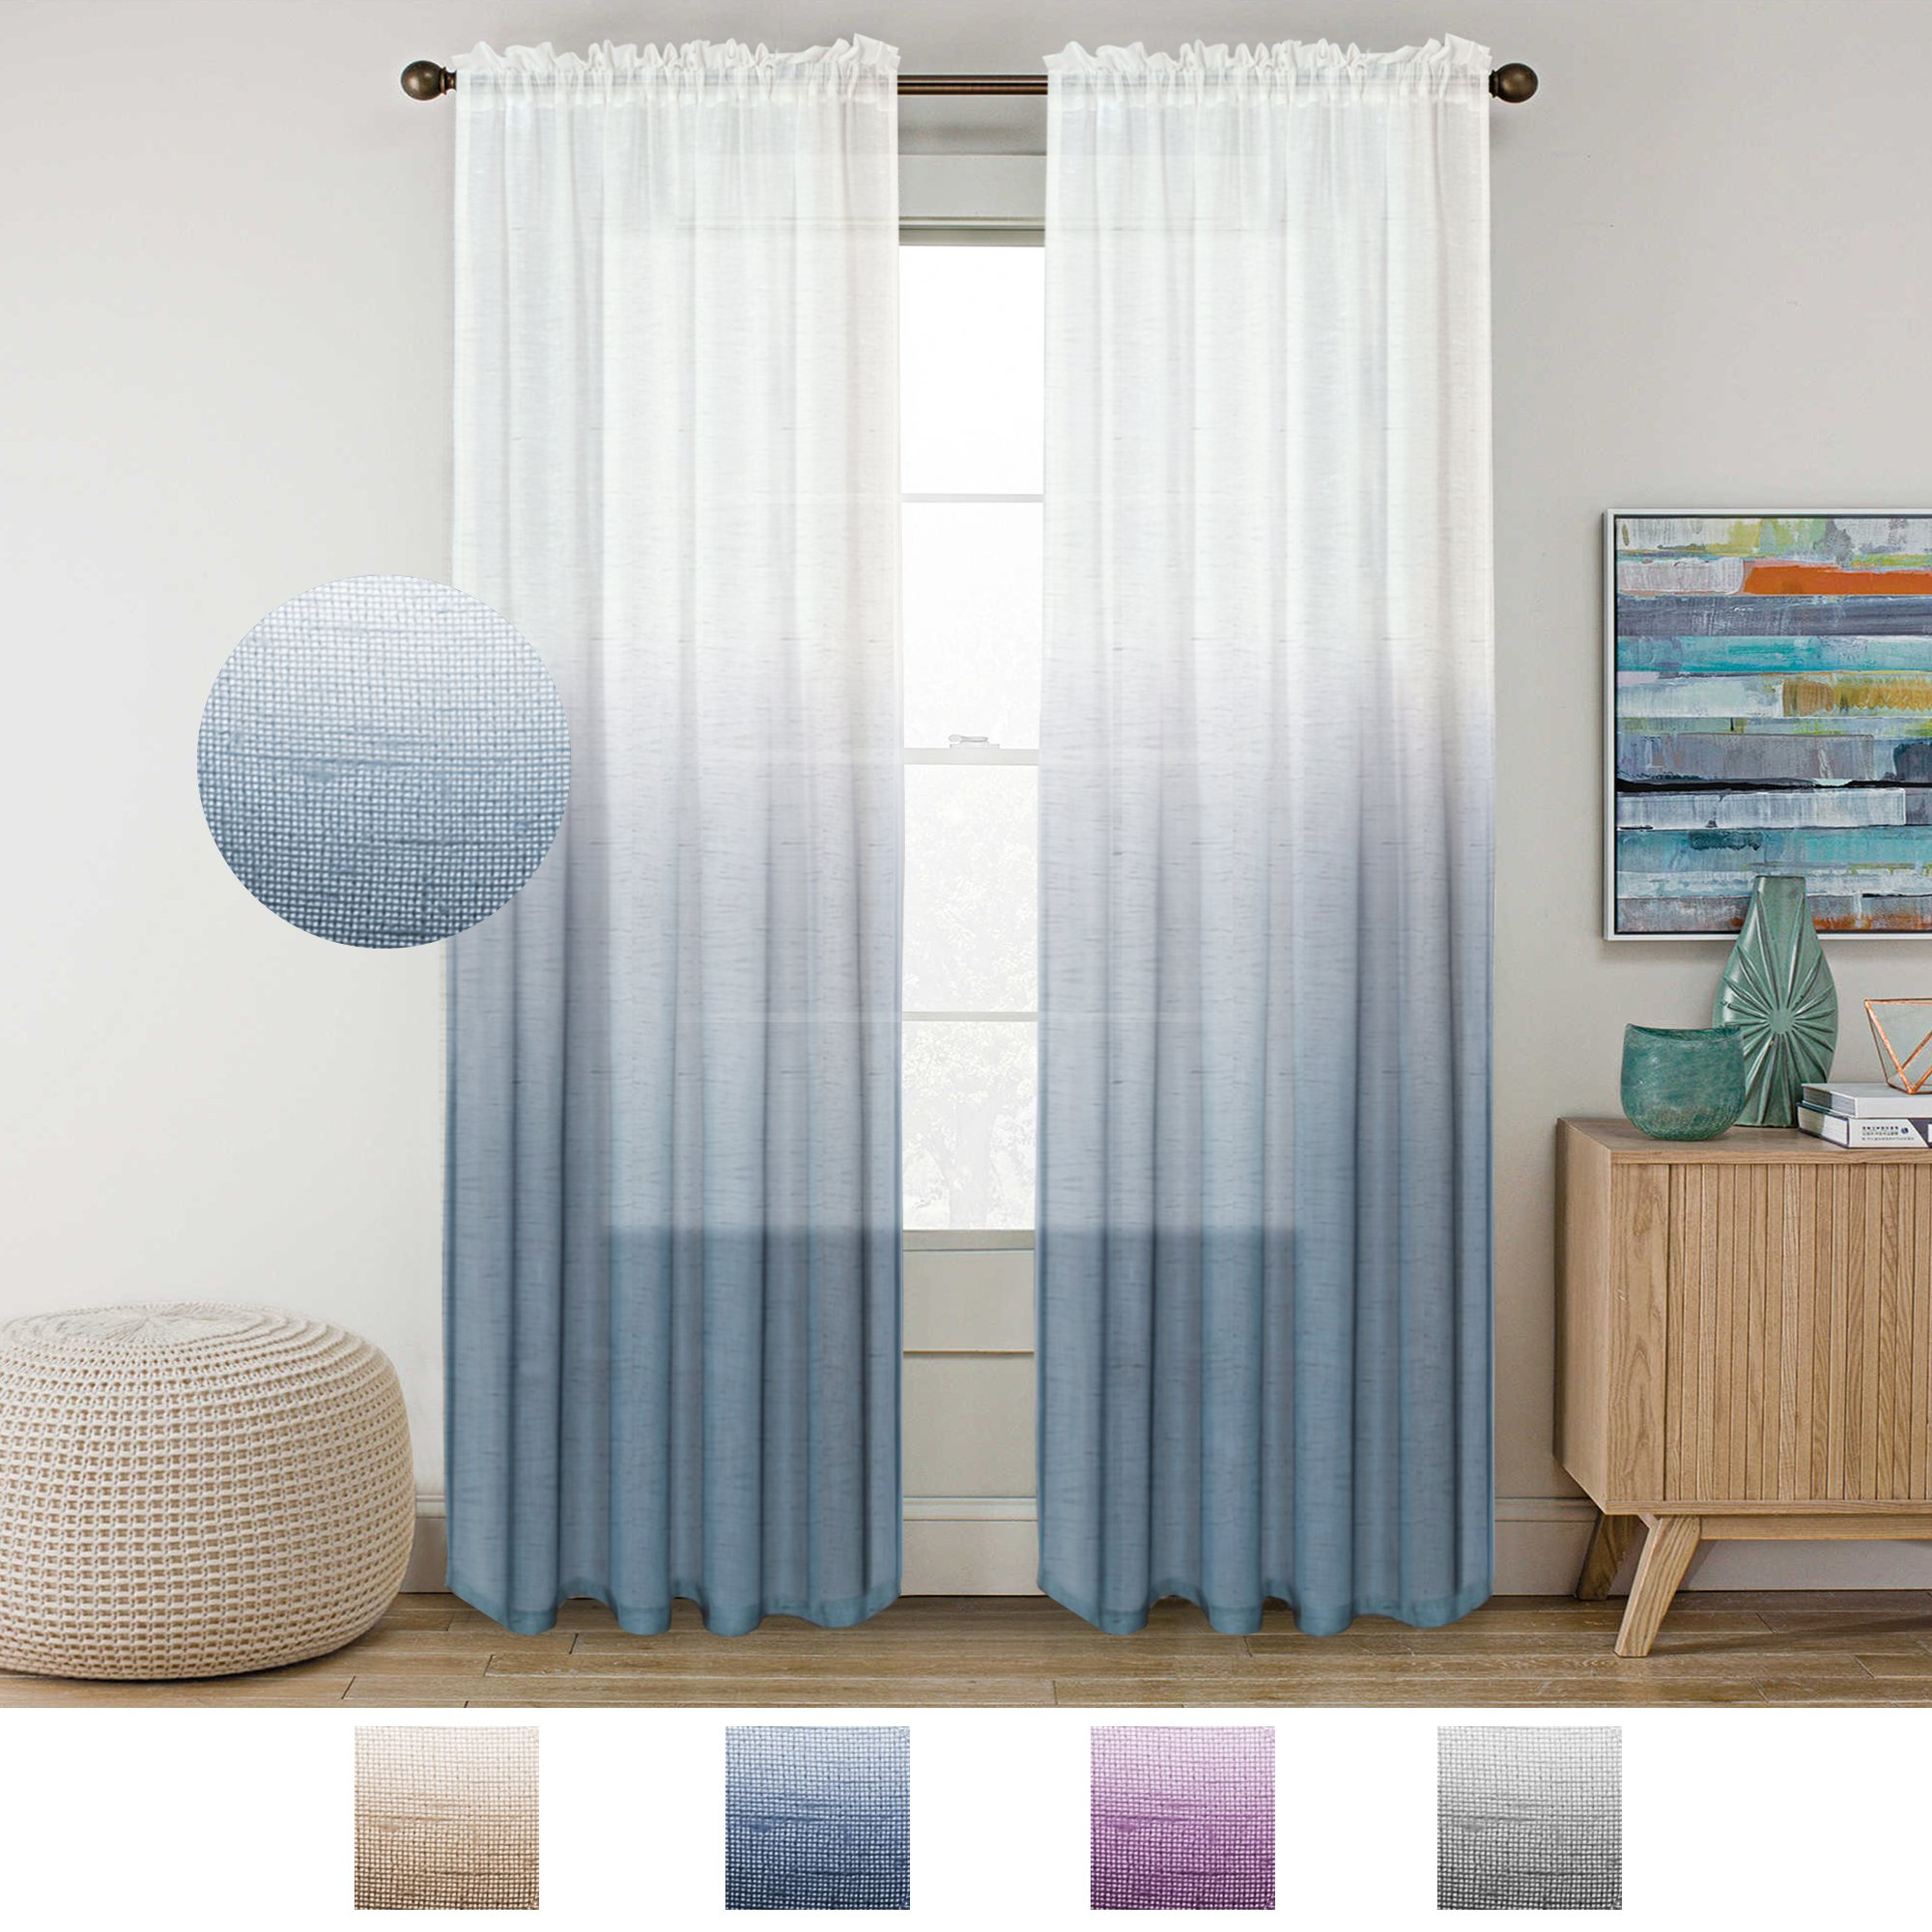 Ombre Faux Linen Semi Sheer Curtains With Well Known Cheap Natural Linen Sheer Curtains, Find Natural Linen Sheer (View 17 of 20)